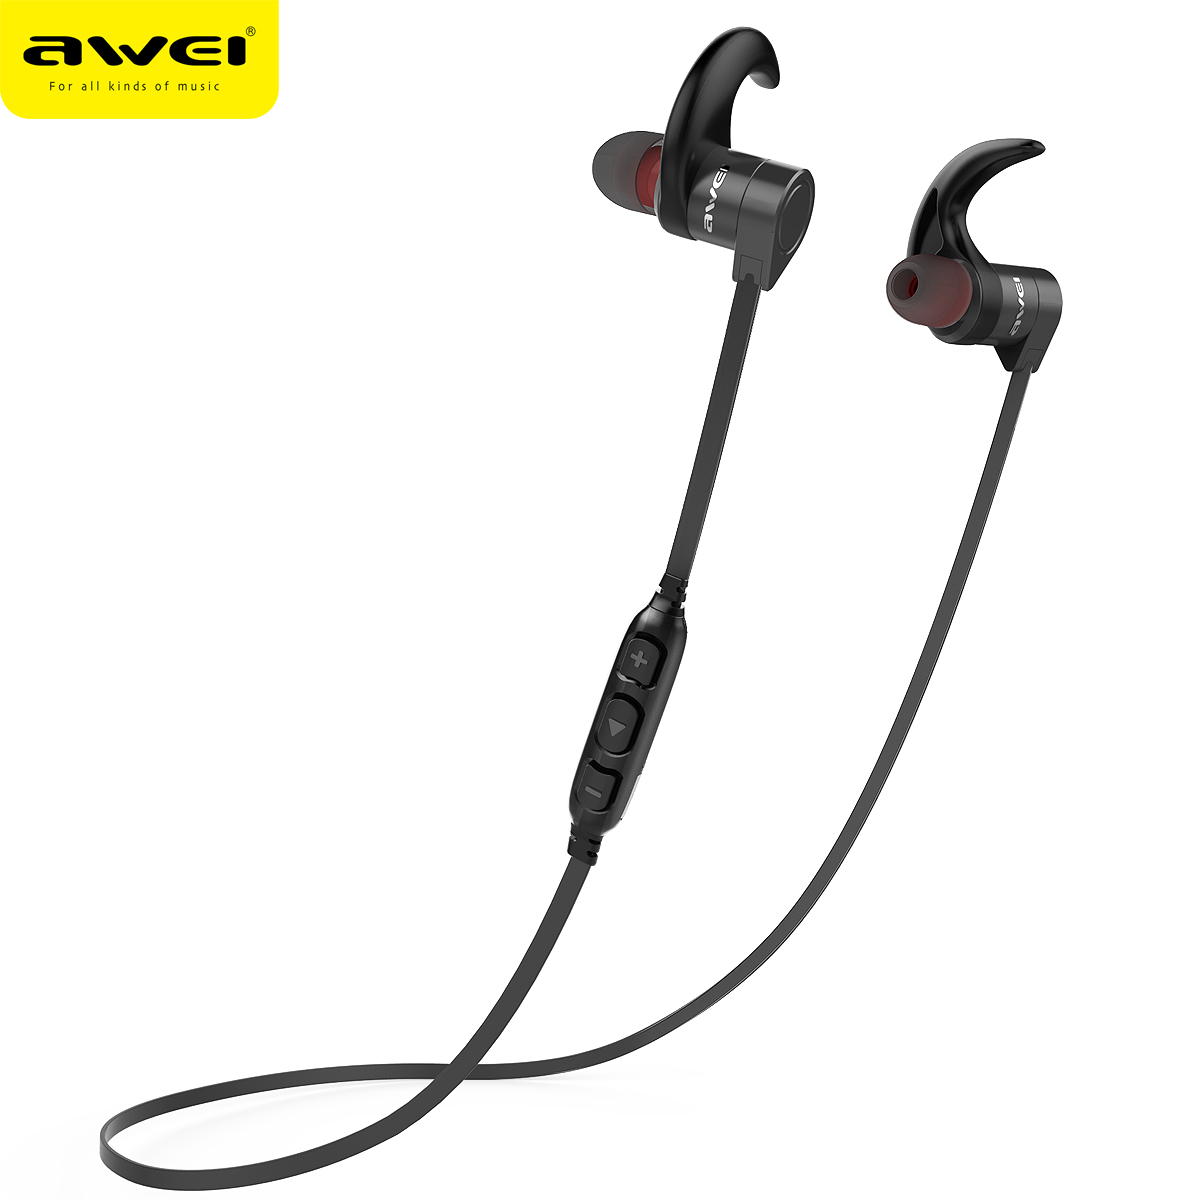 AWEI AK3 Bluetooth Earphone Waterproof Wireless Headset Casque With Microphone Cordless Earphone Earpiece Audifonos Earbuds awei ak3 bluetooth earphone ipx4 waterproof wireless headset casque with microphone cordless earphone earpiece audifonos earbuds